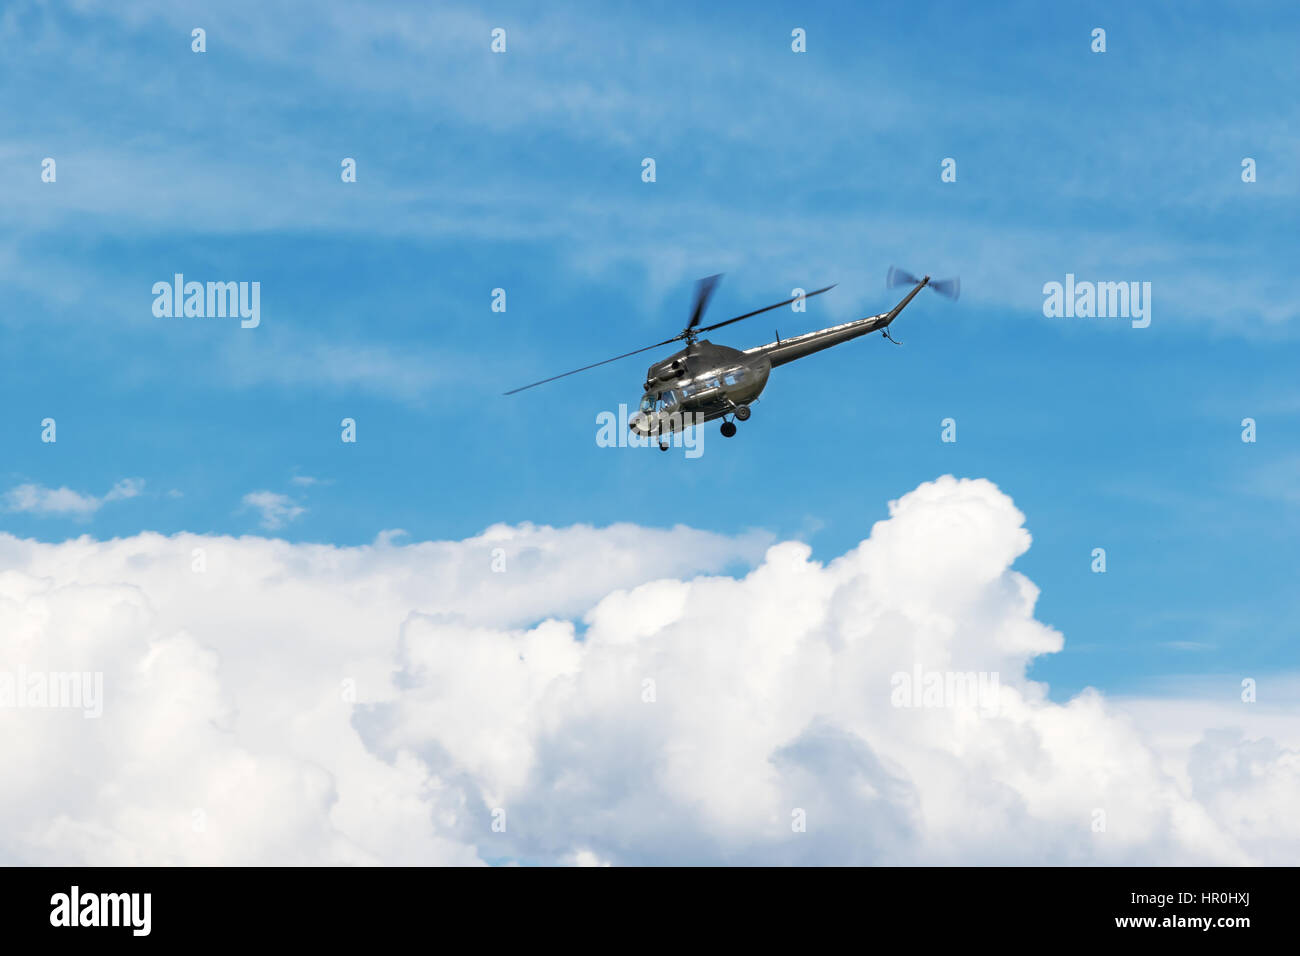 Large military helicopter flies into the side of a blue sky with clouds - Stock Image